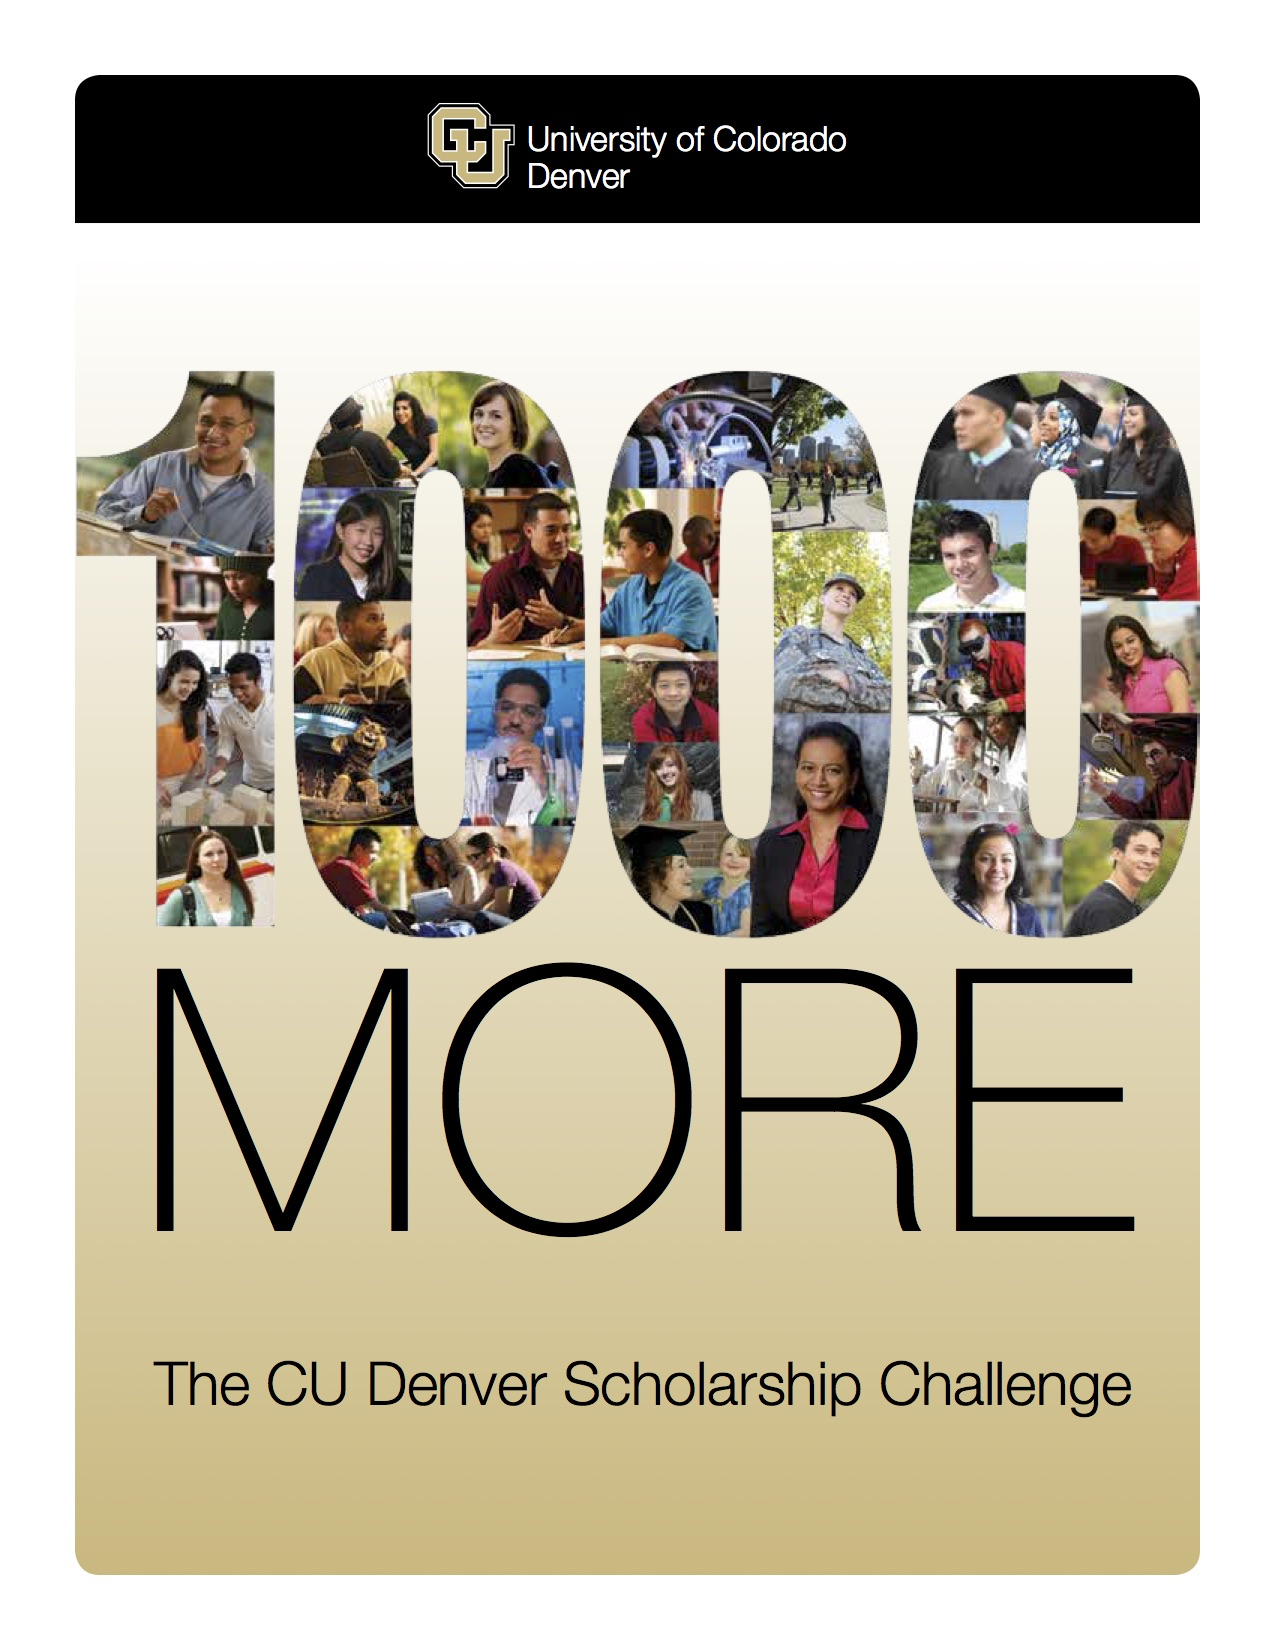 Scholarships at CU Denver